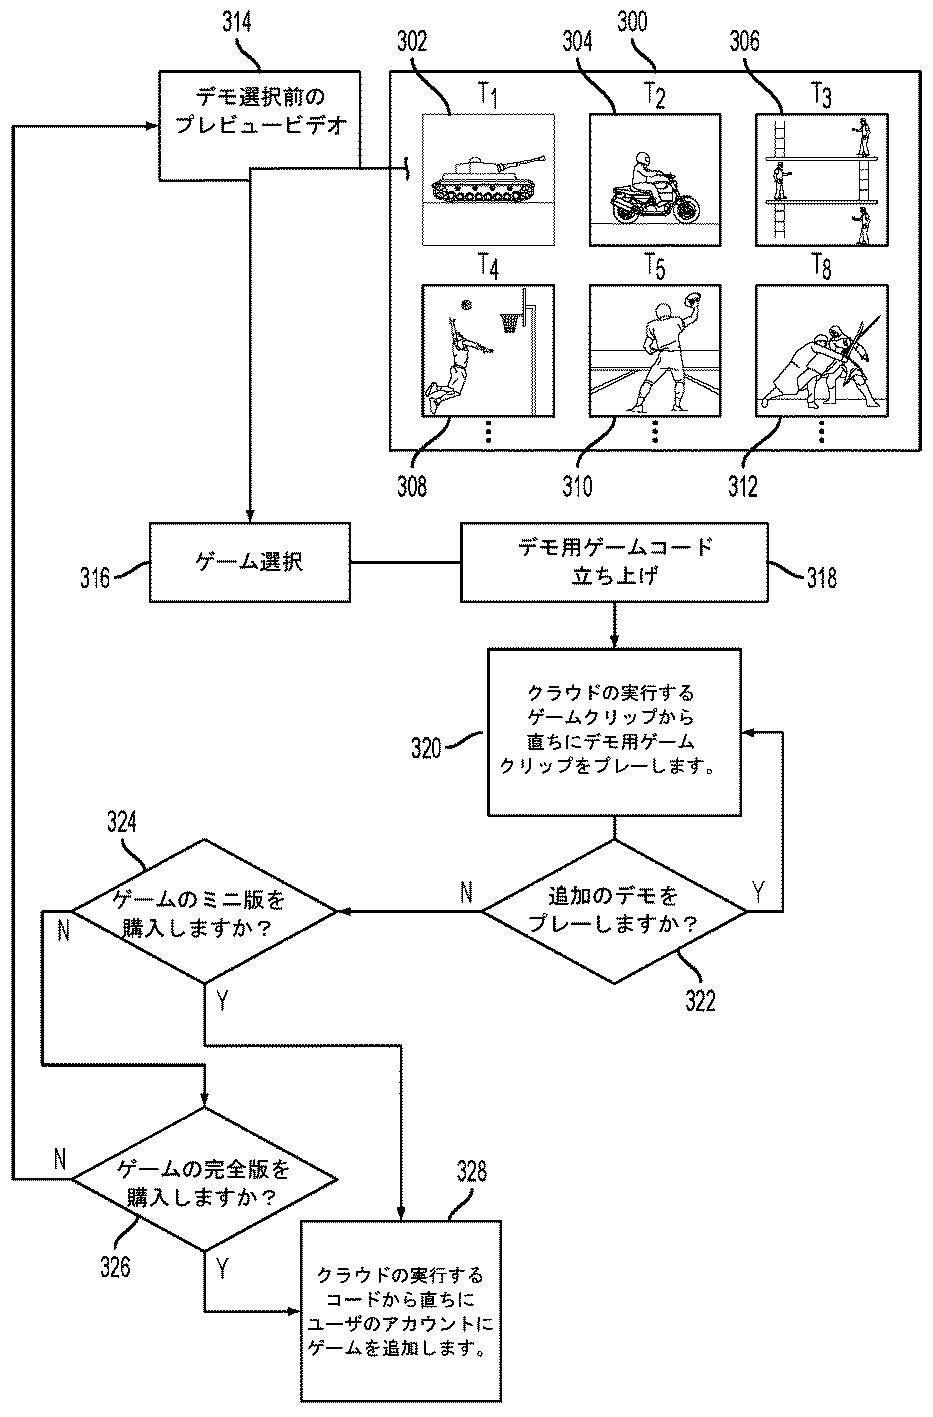 sony-files-a-patent-to-enable-game-emulation-across-for-ps1-ps2-ps3-titles-1